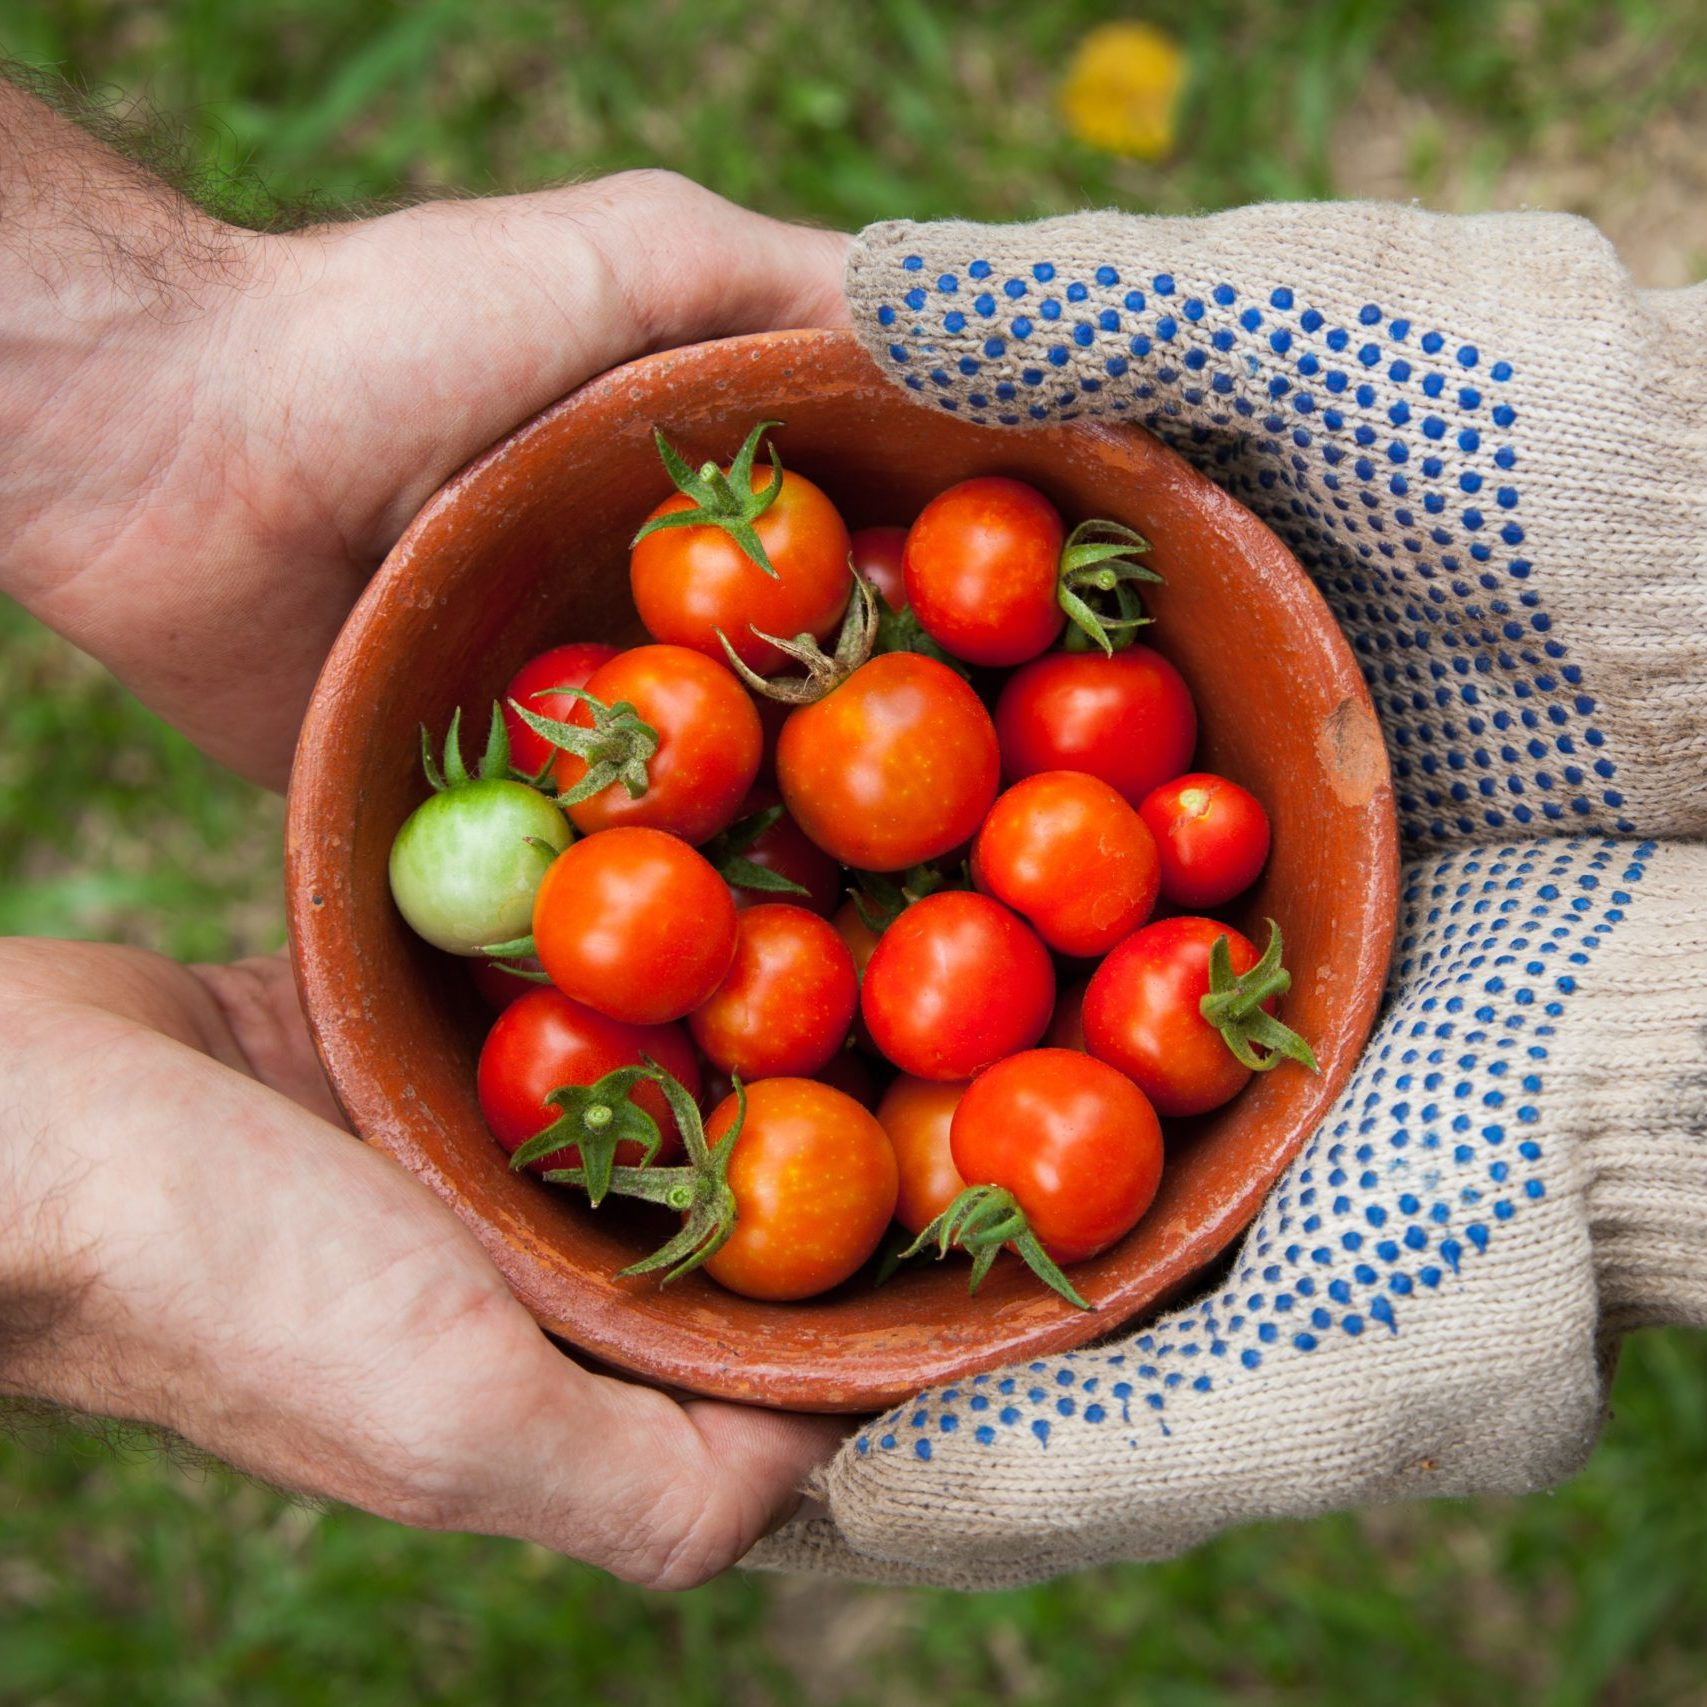 hands-sharing-tomatoes-unsplash